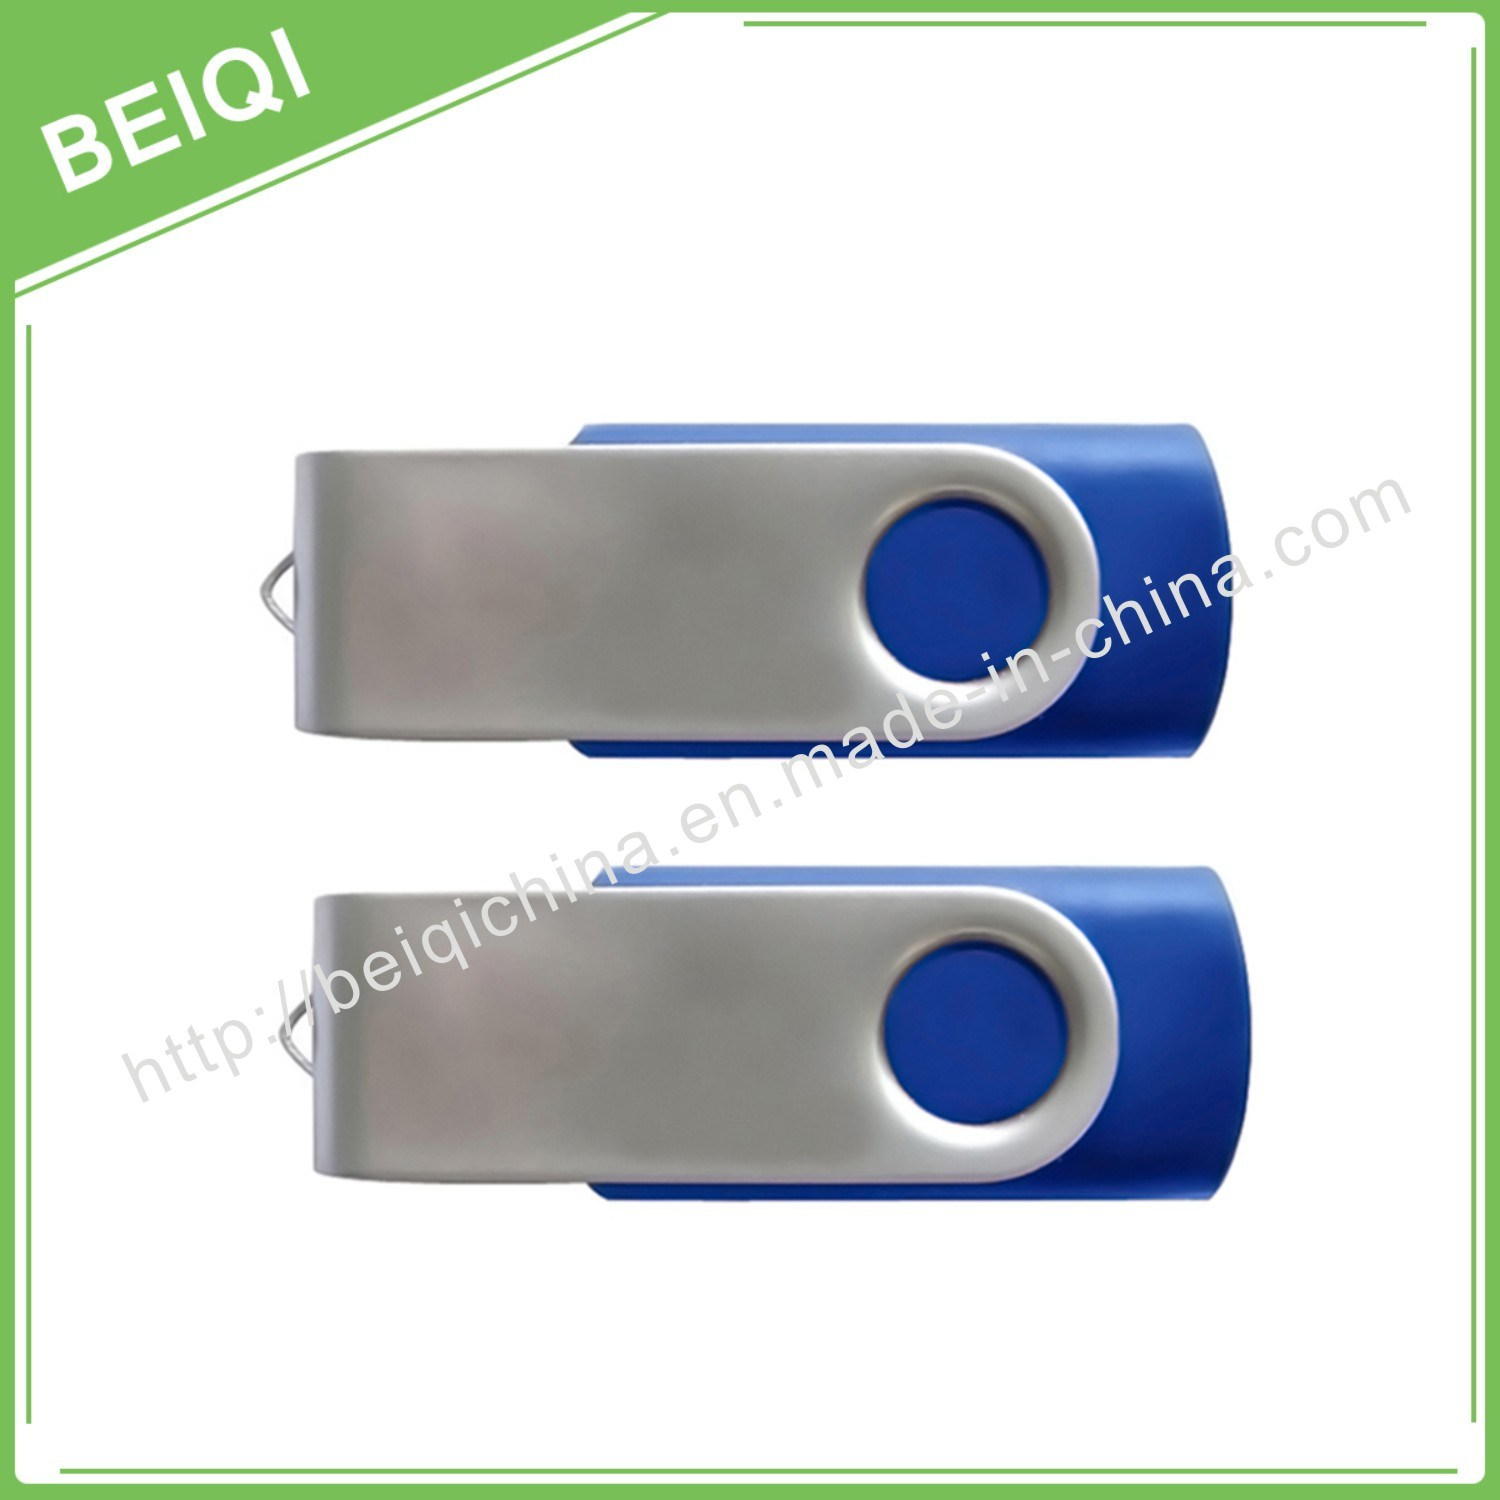 High Speed Custom USB Flash Drive with Personlized Logo